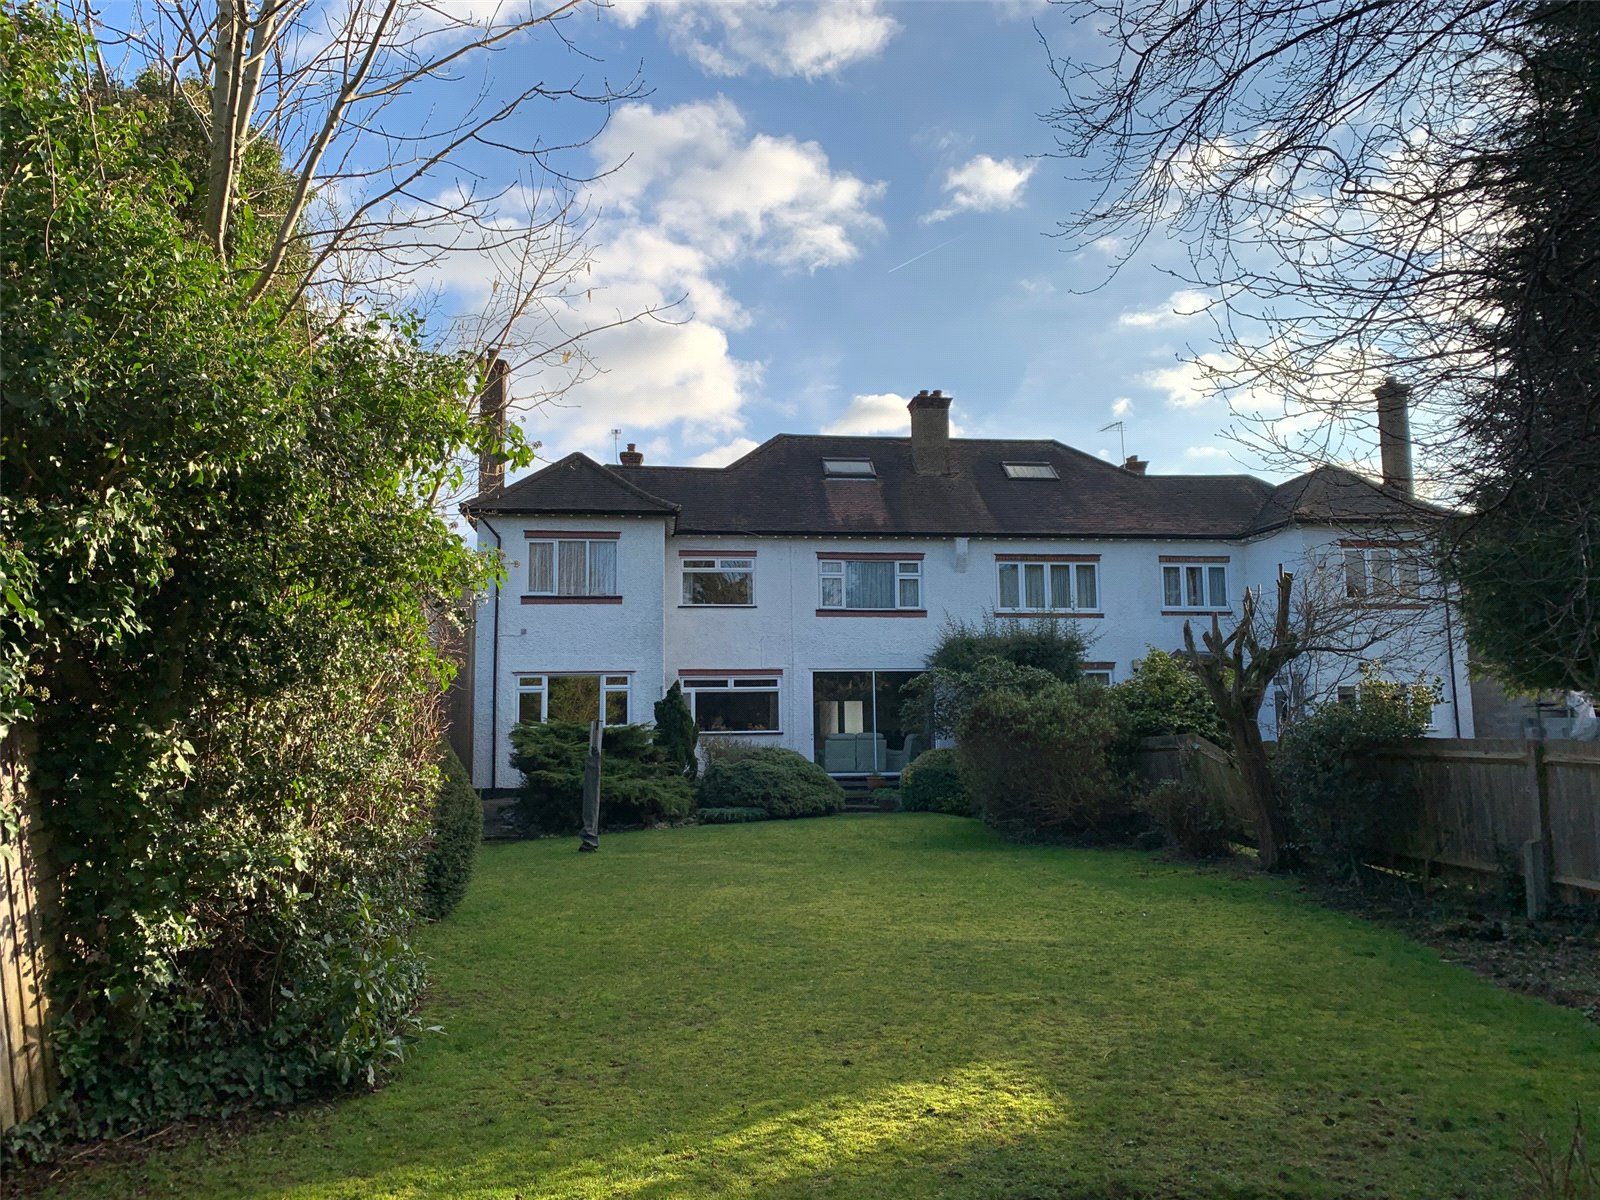 4 bed house for sale in Whetstone, N20 9ED  - Property Image 6